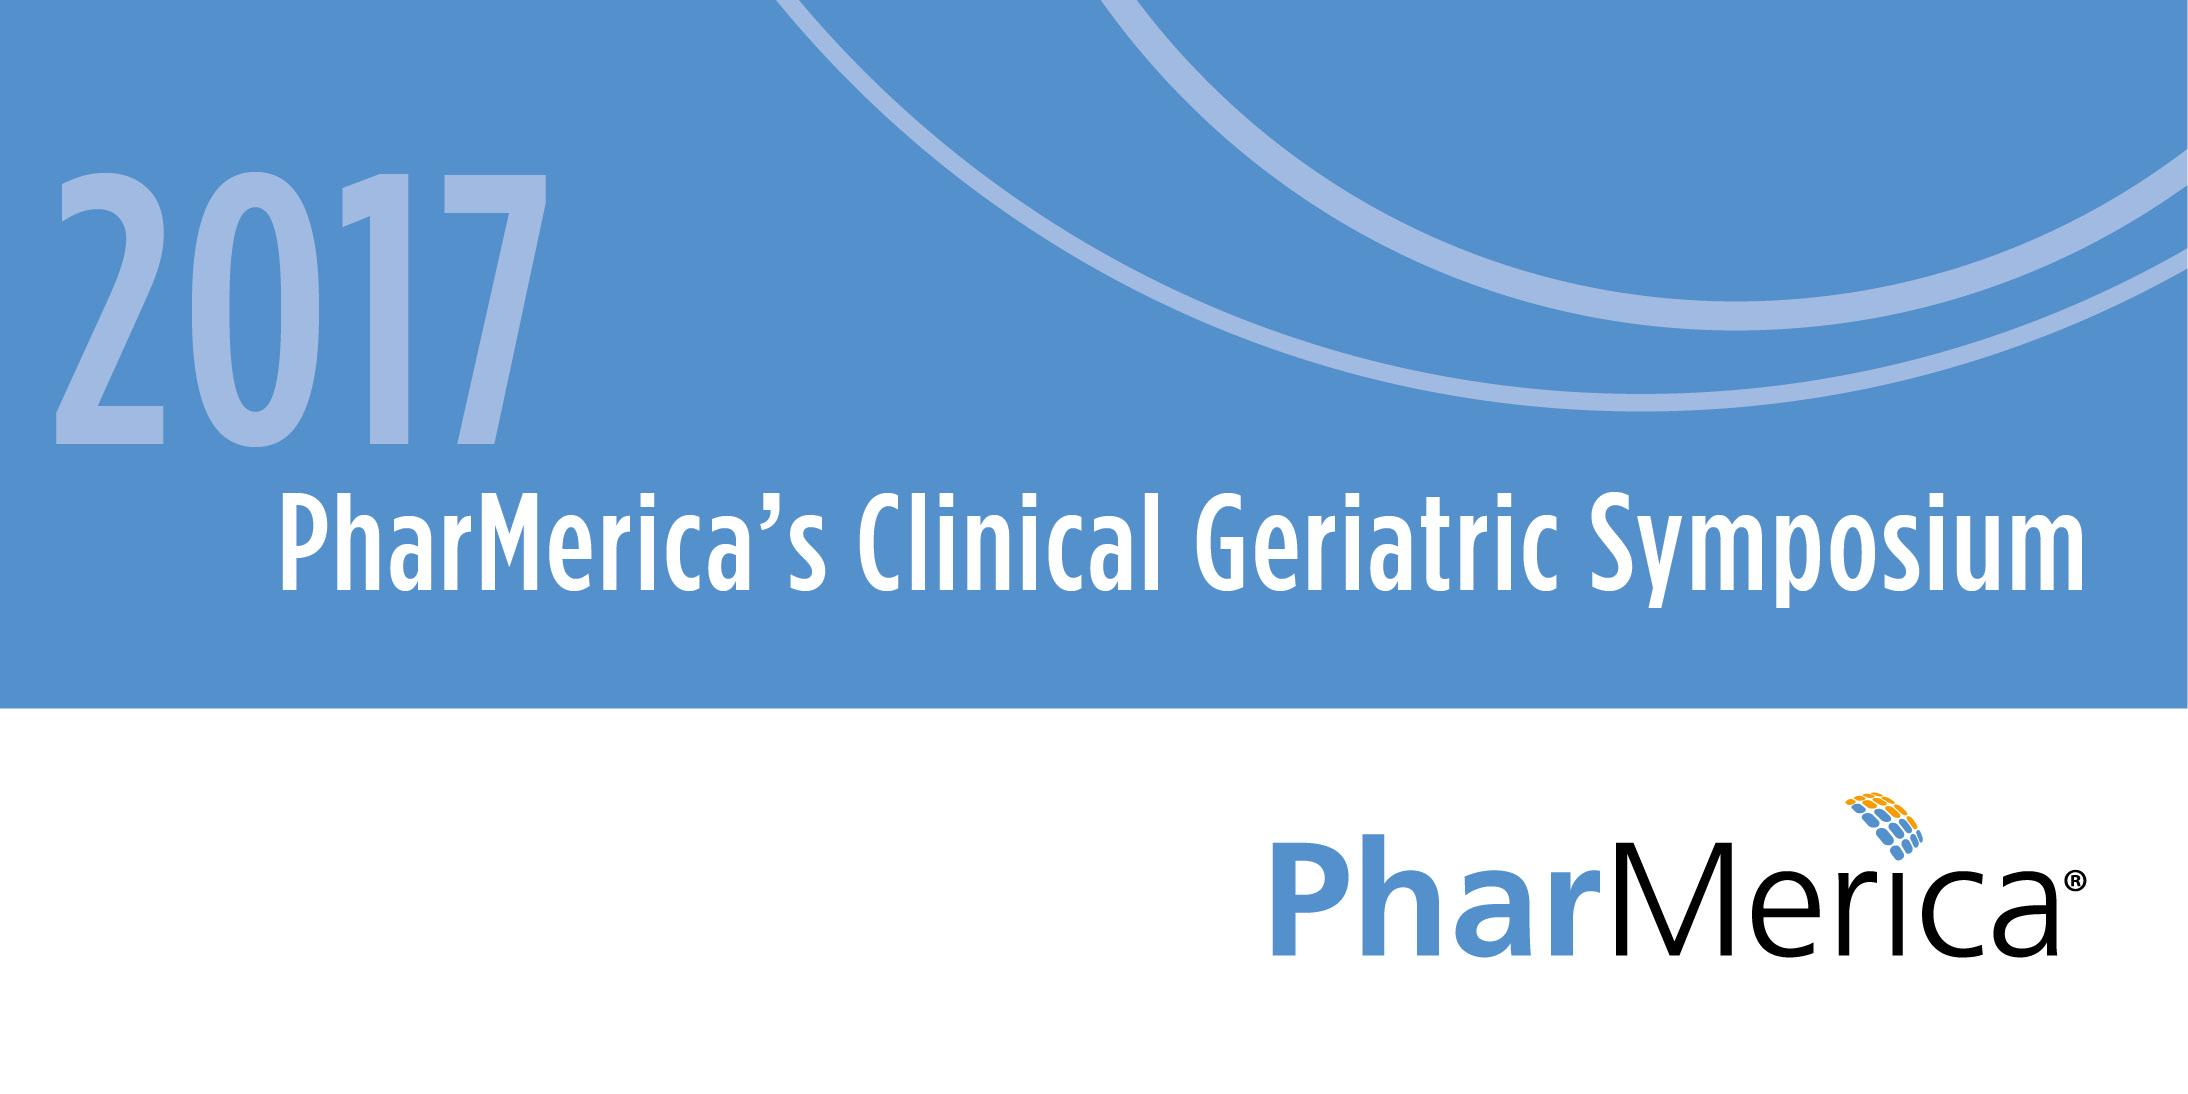 PharMerica's Clinical Geriatric Symposium - B